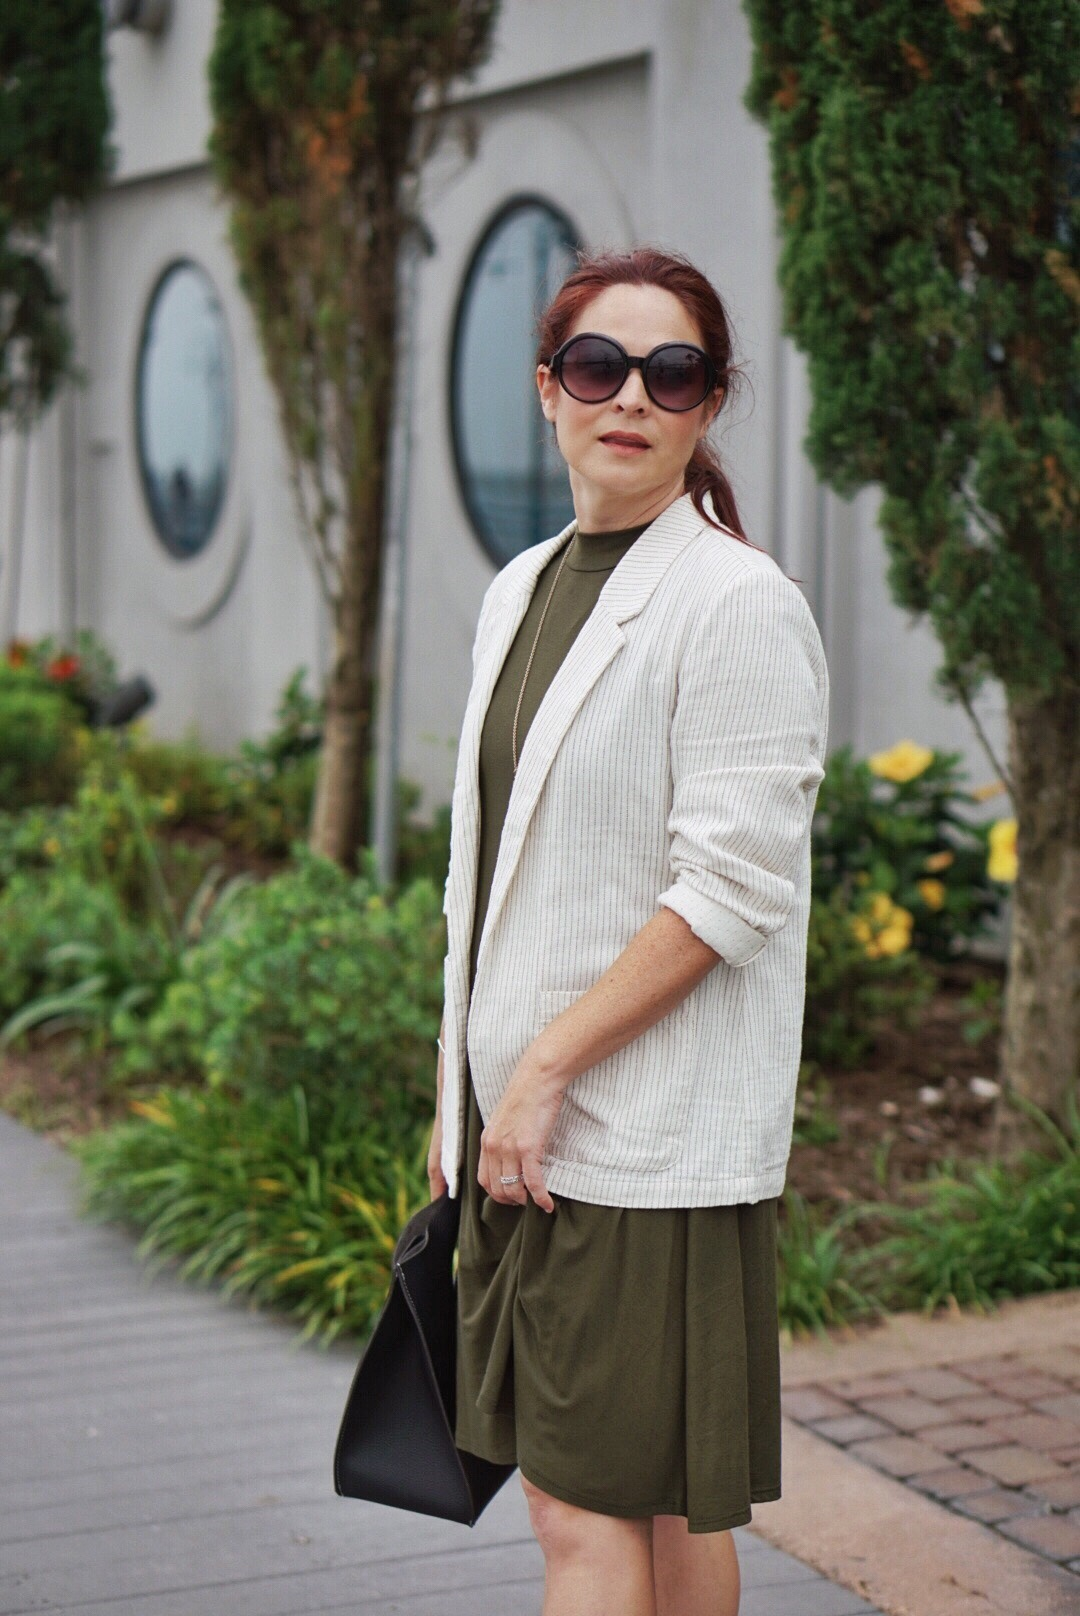 swing dresses, olive green dress, blazer outfit ideas